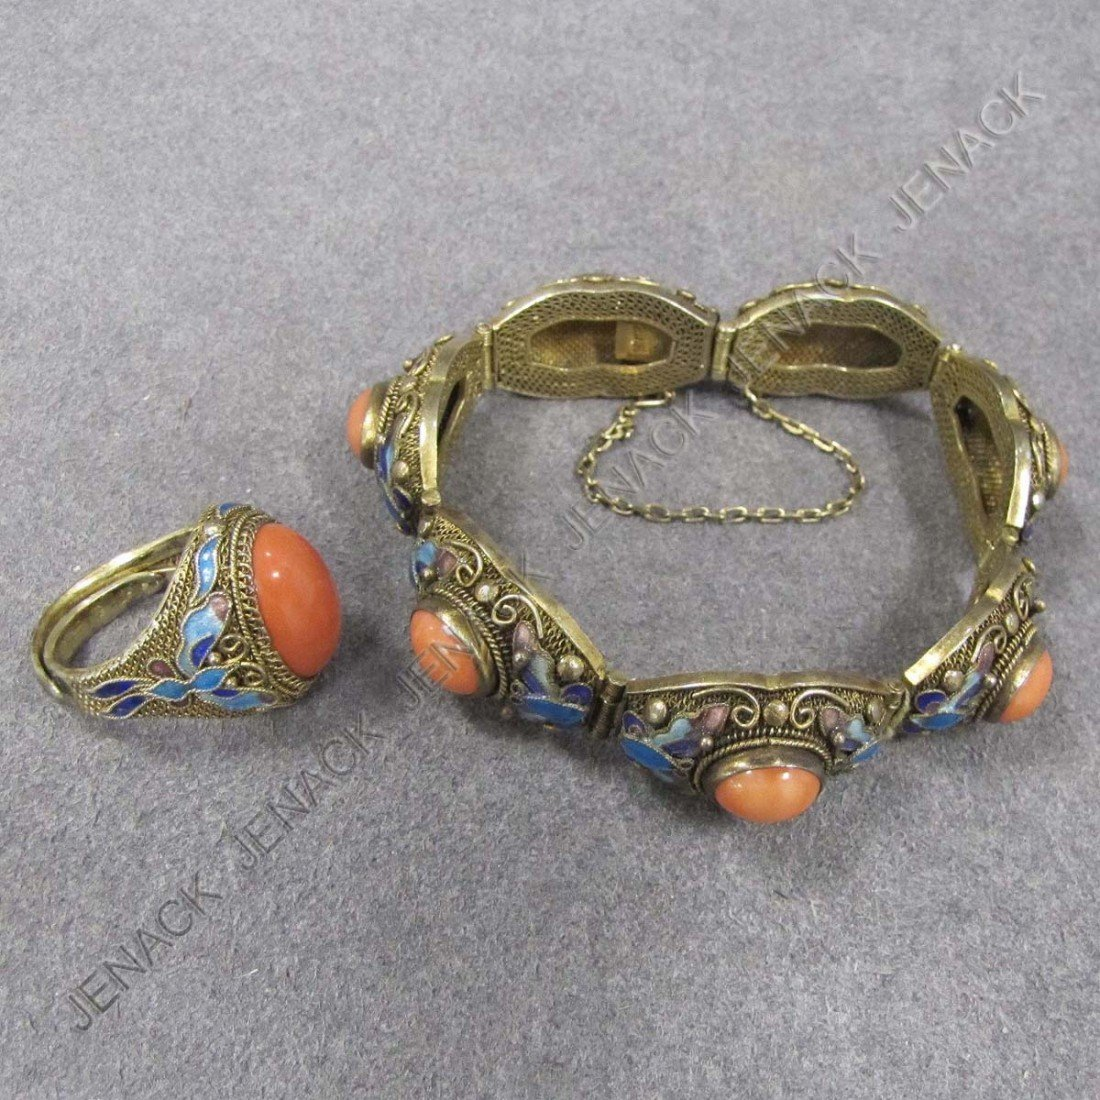 93: CHINESE STYLE GILT SILVER RING & BRACELET